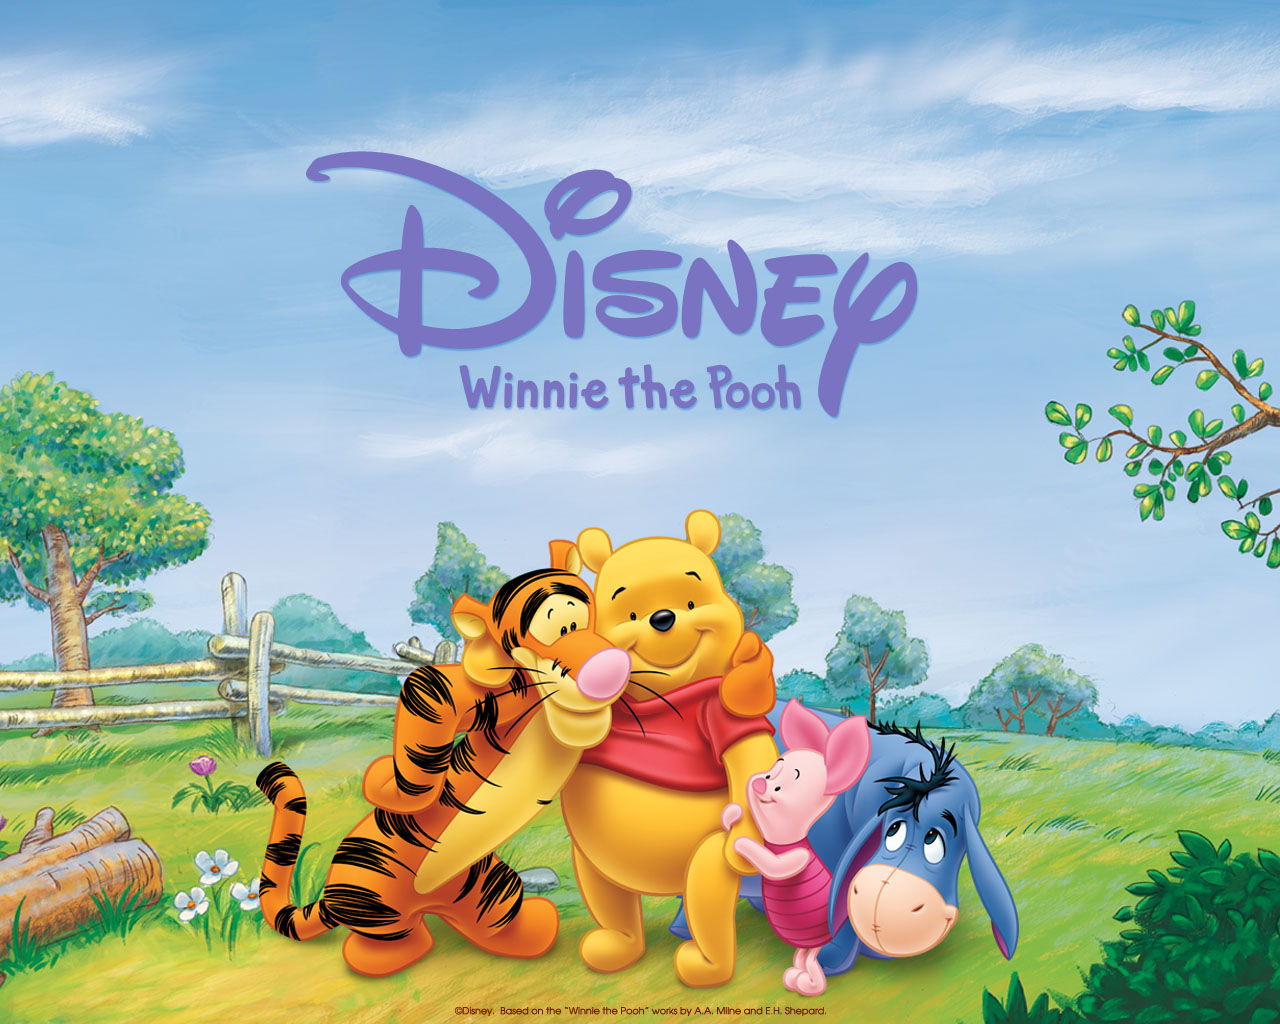 Wallpaper Winnie The Pooh: Wallpapers: Winnie The Pooh Animated Movie